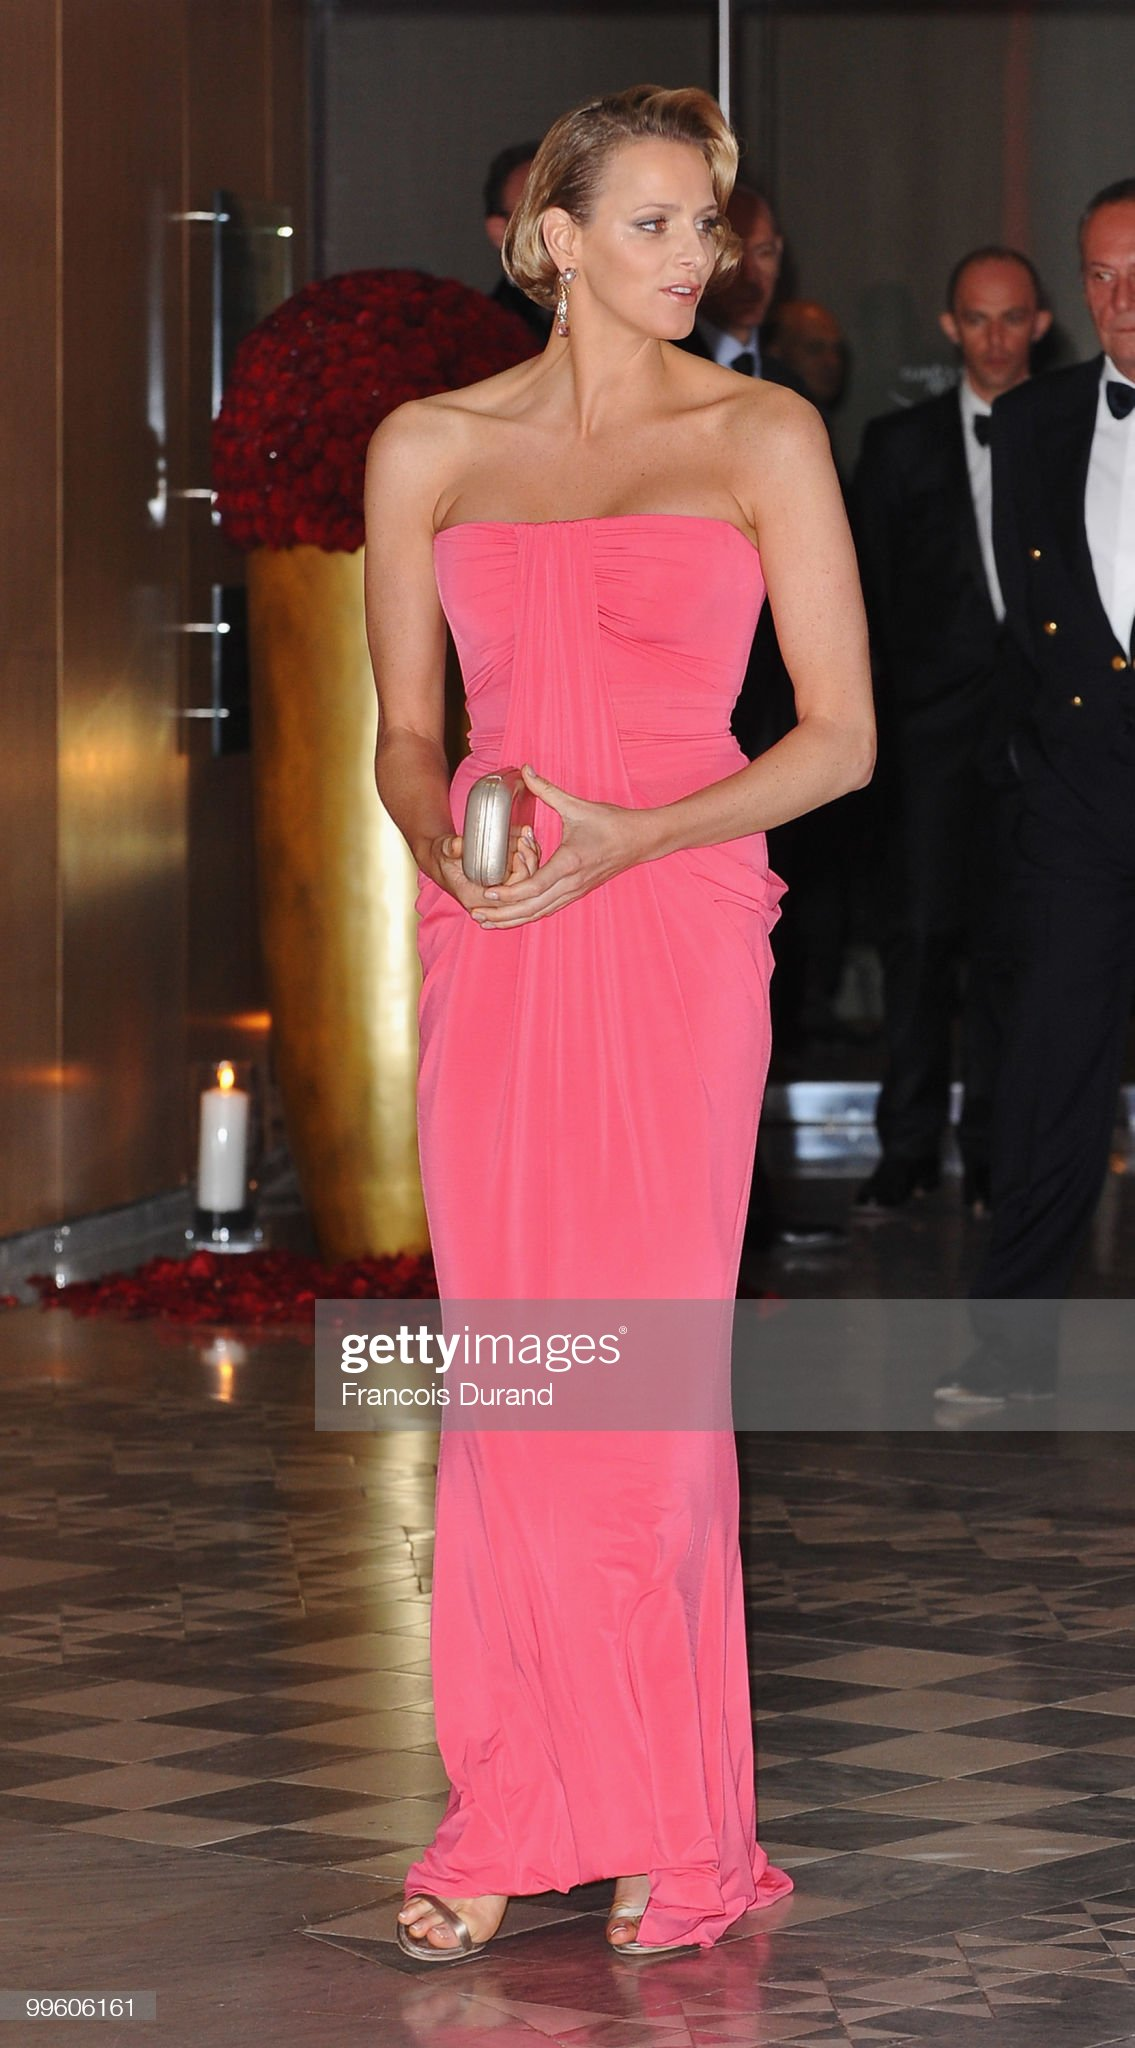 Monaco Grand Prix Gala Dinner - Arrivals : News Photo